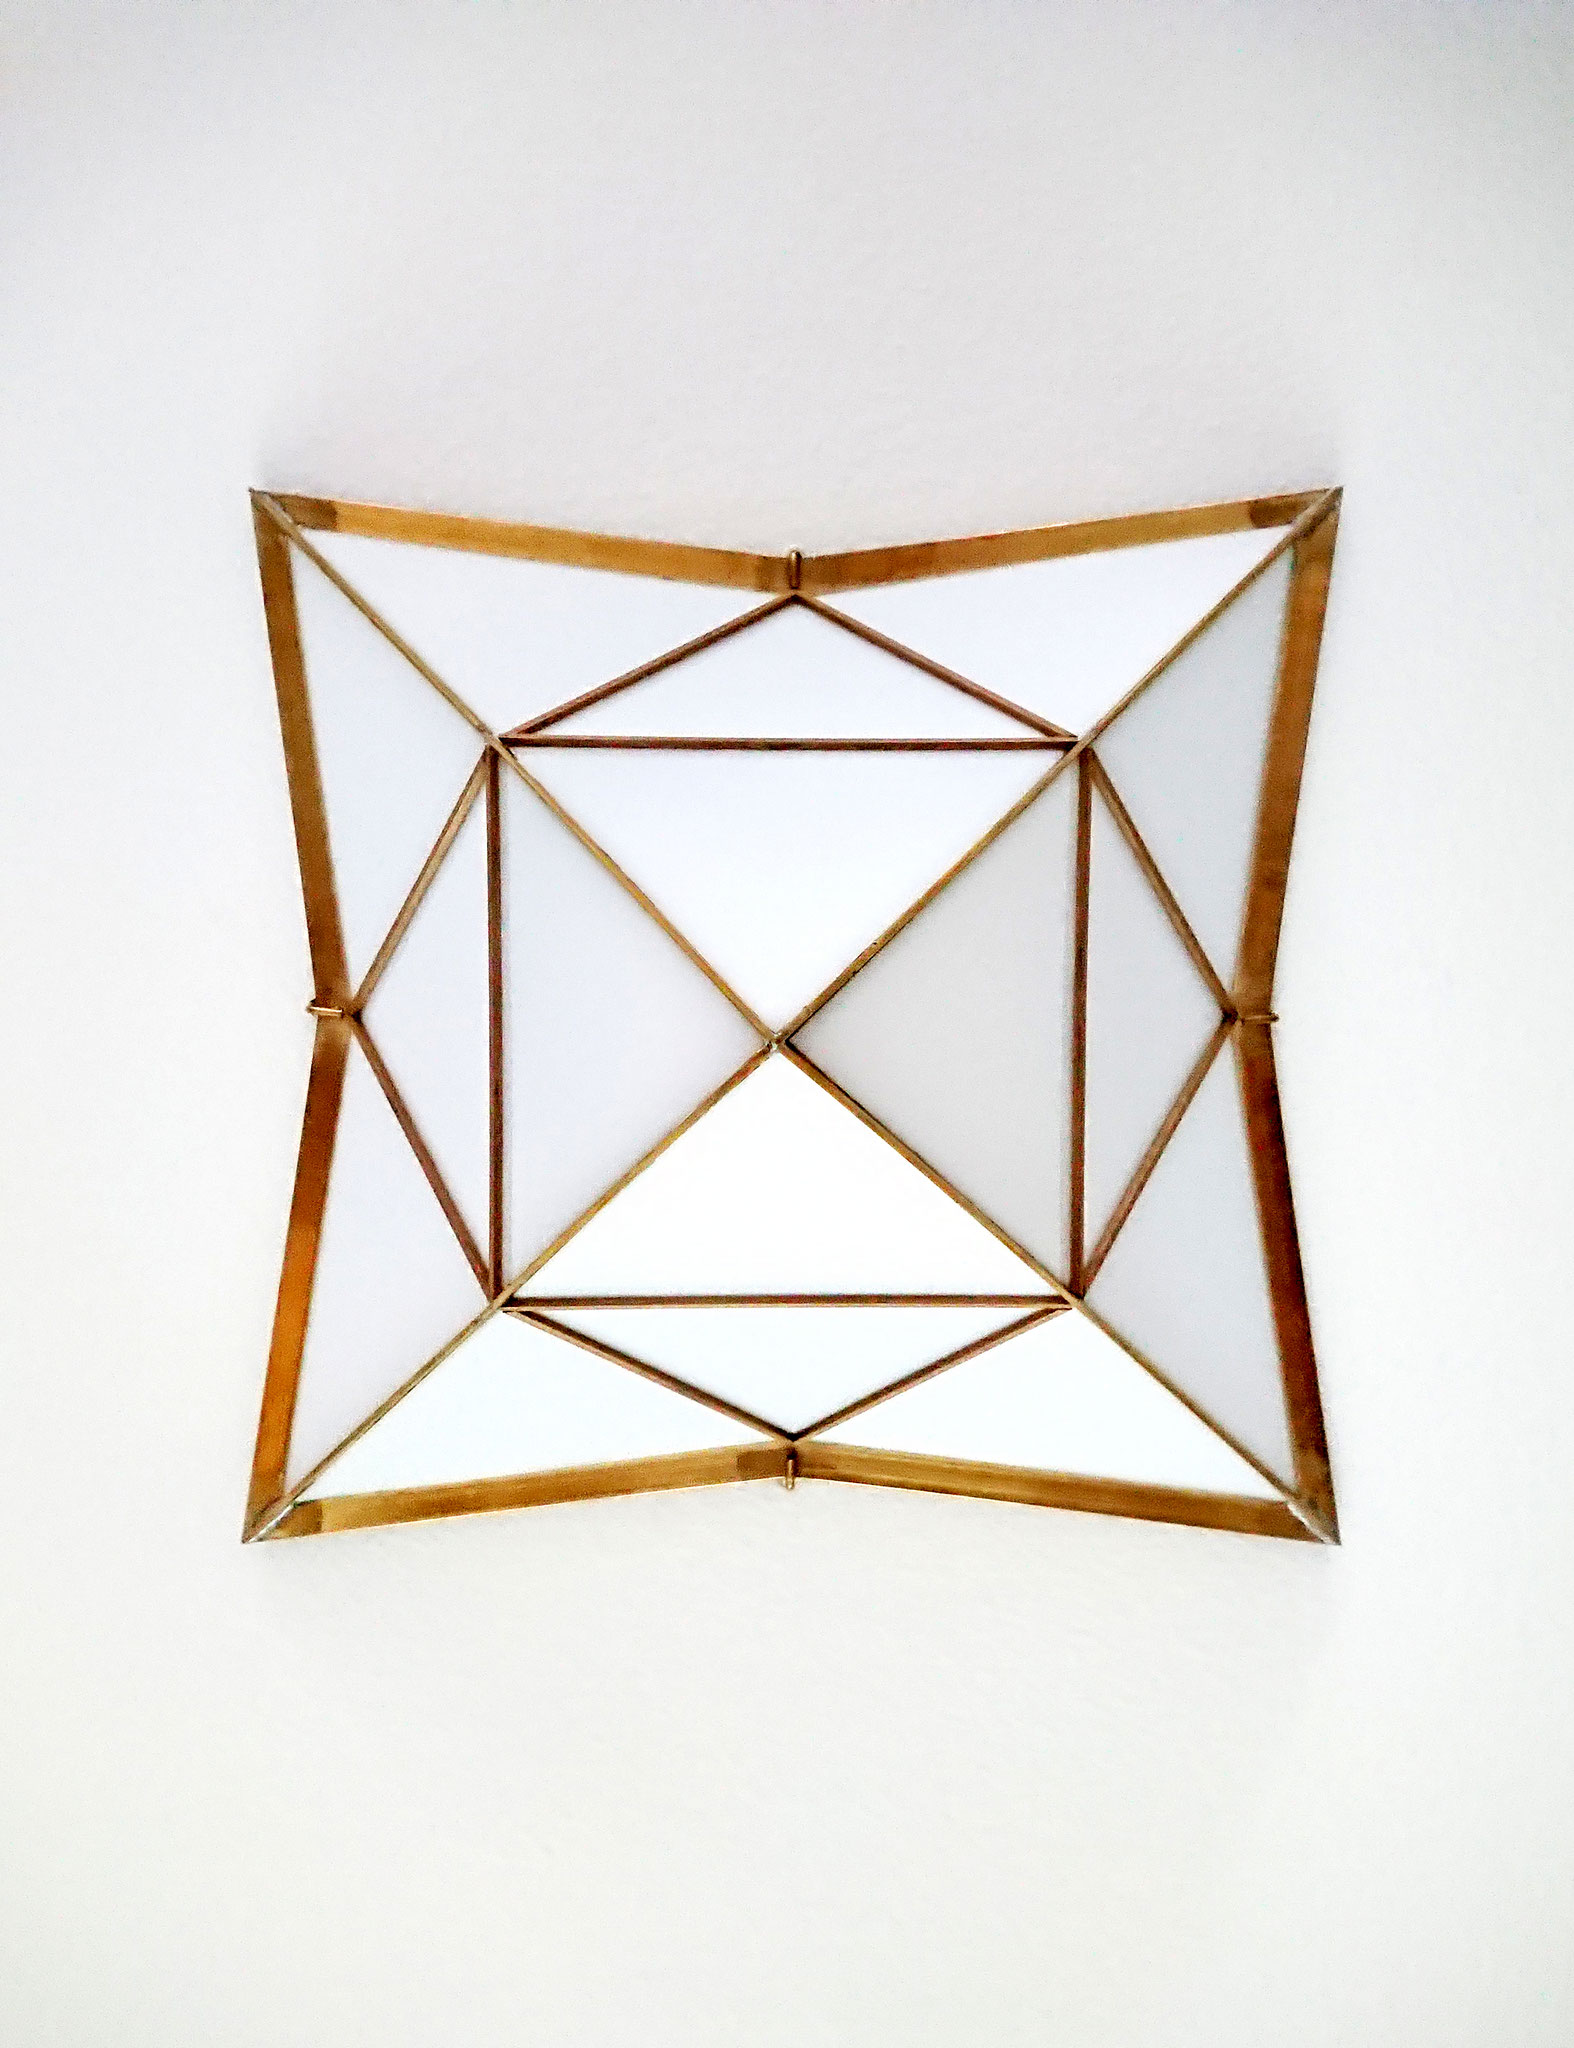 H.No.8 | 40 x 40 x 27 cm | brass, acrylic glass